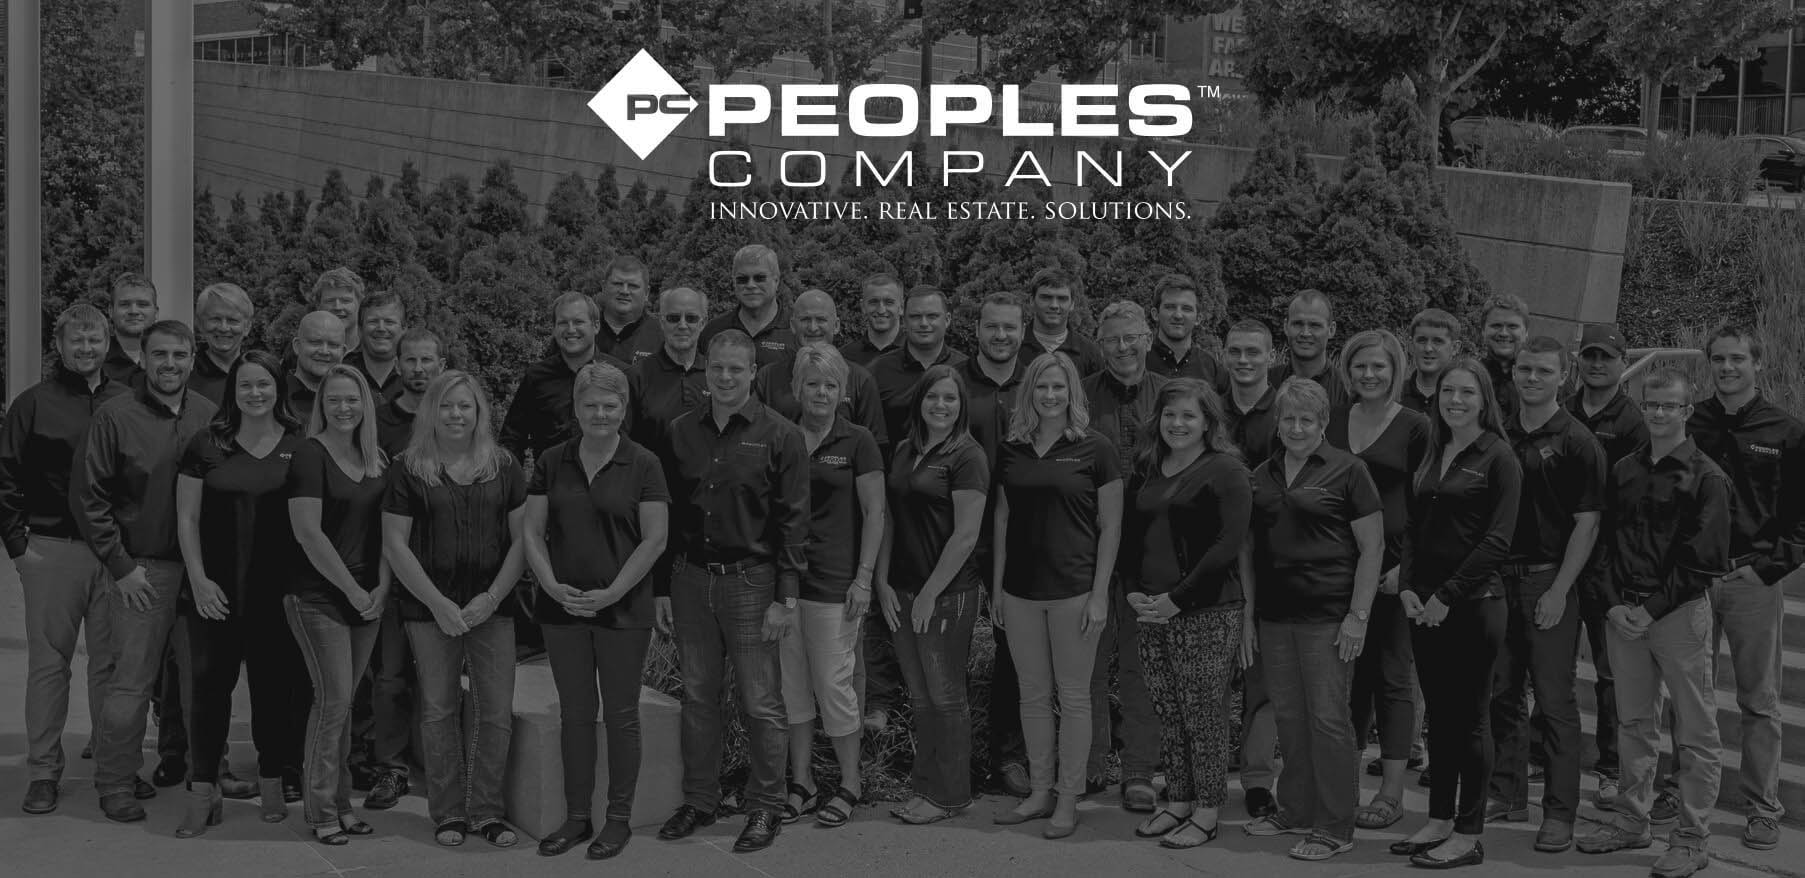 PEOPLES-company-team-photo